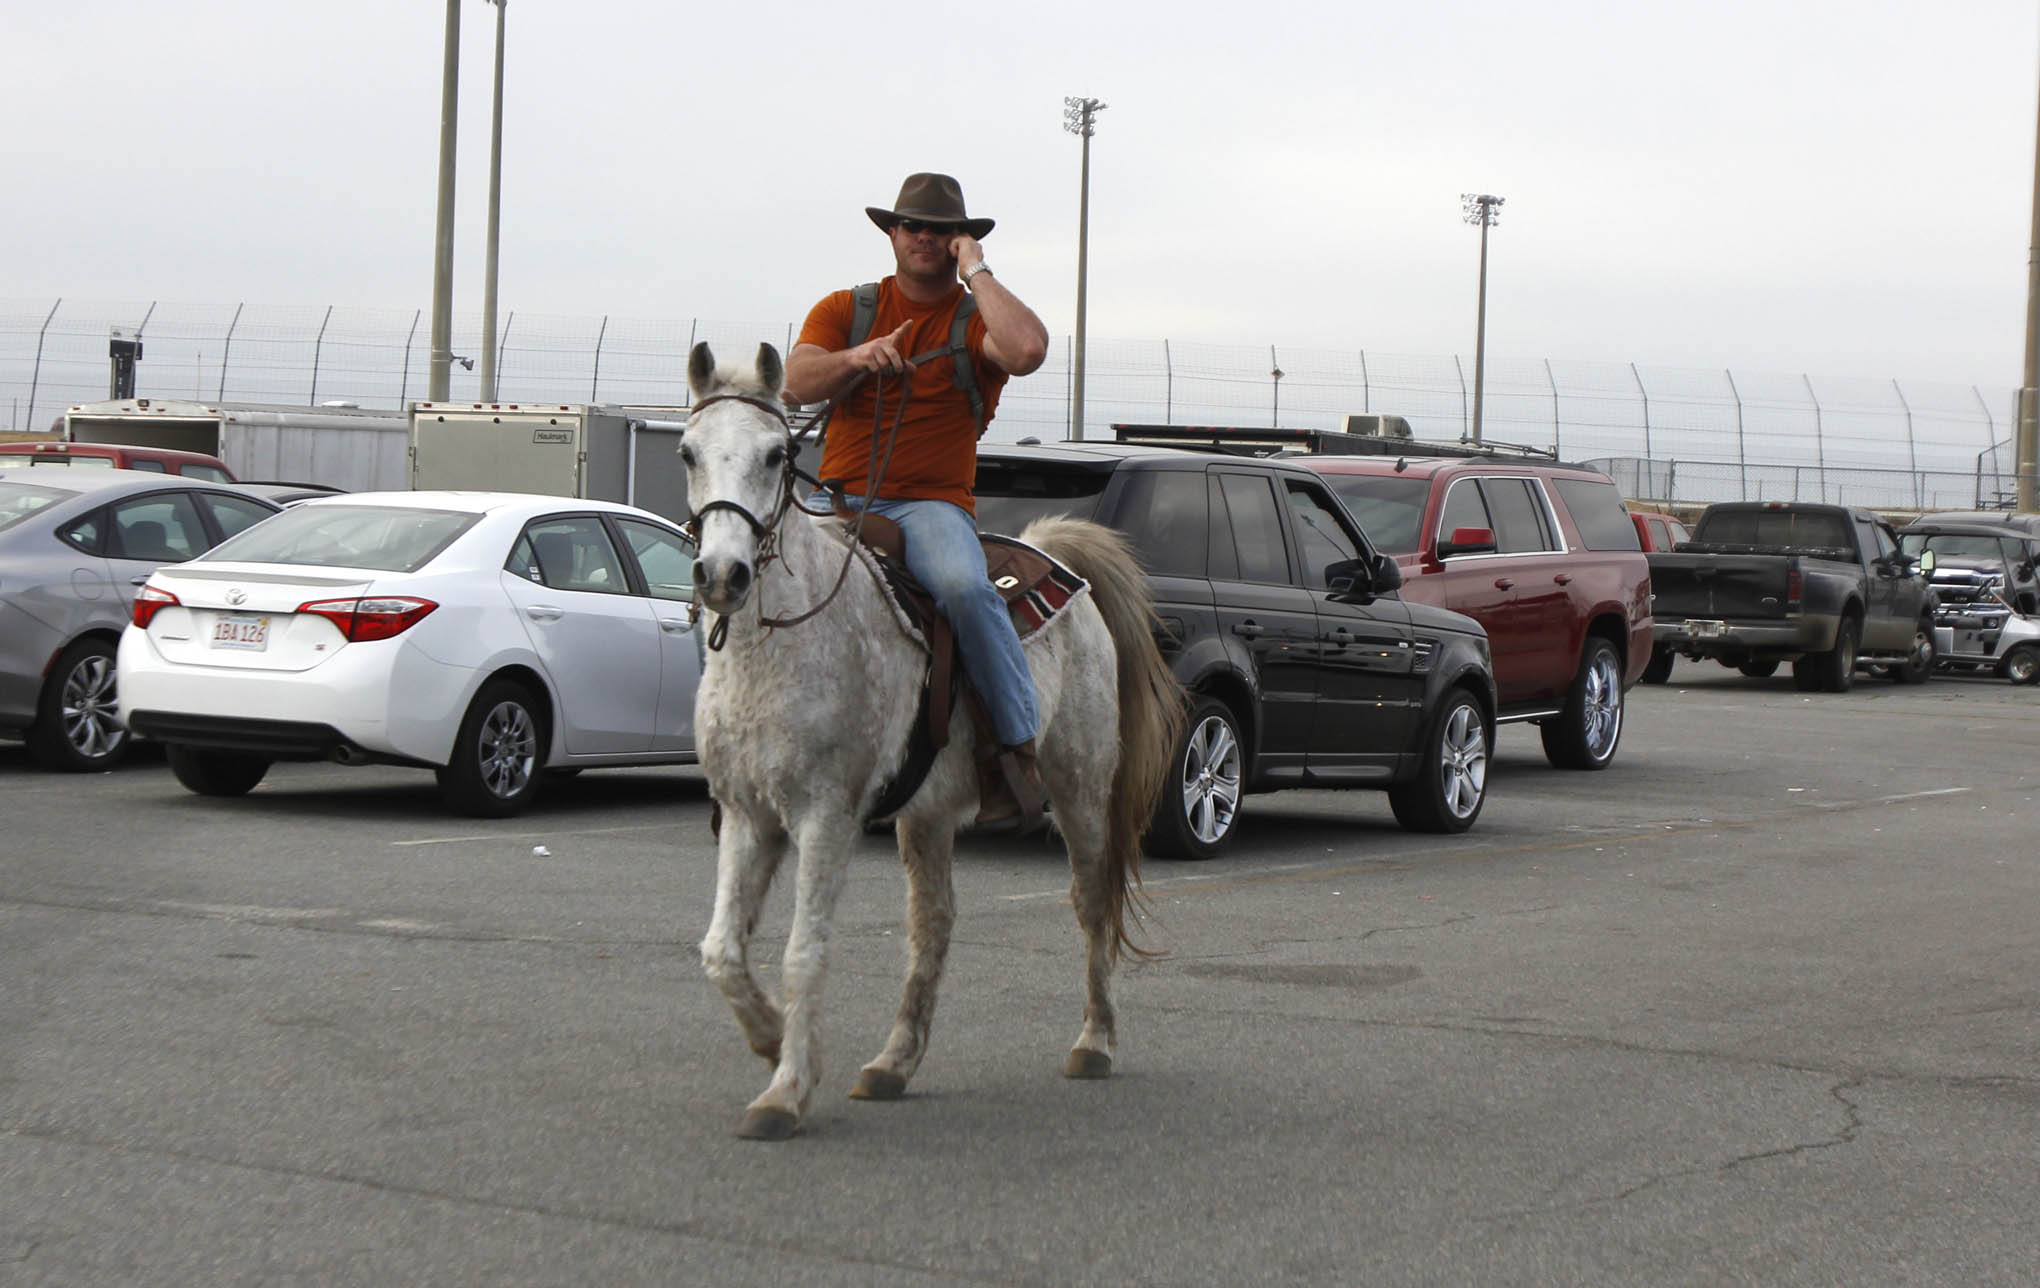 You just can't make this stuff up. We saw this dude riding around in the pits on his horse while yapping on his phone. We were so surprised we didn't even think to ask his name or what he was doing there. Email us with the details if know this guy.